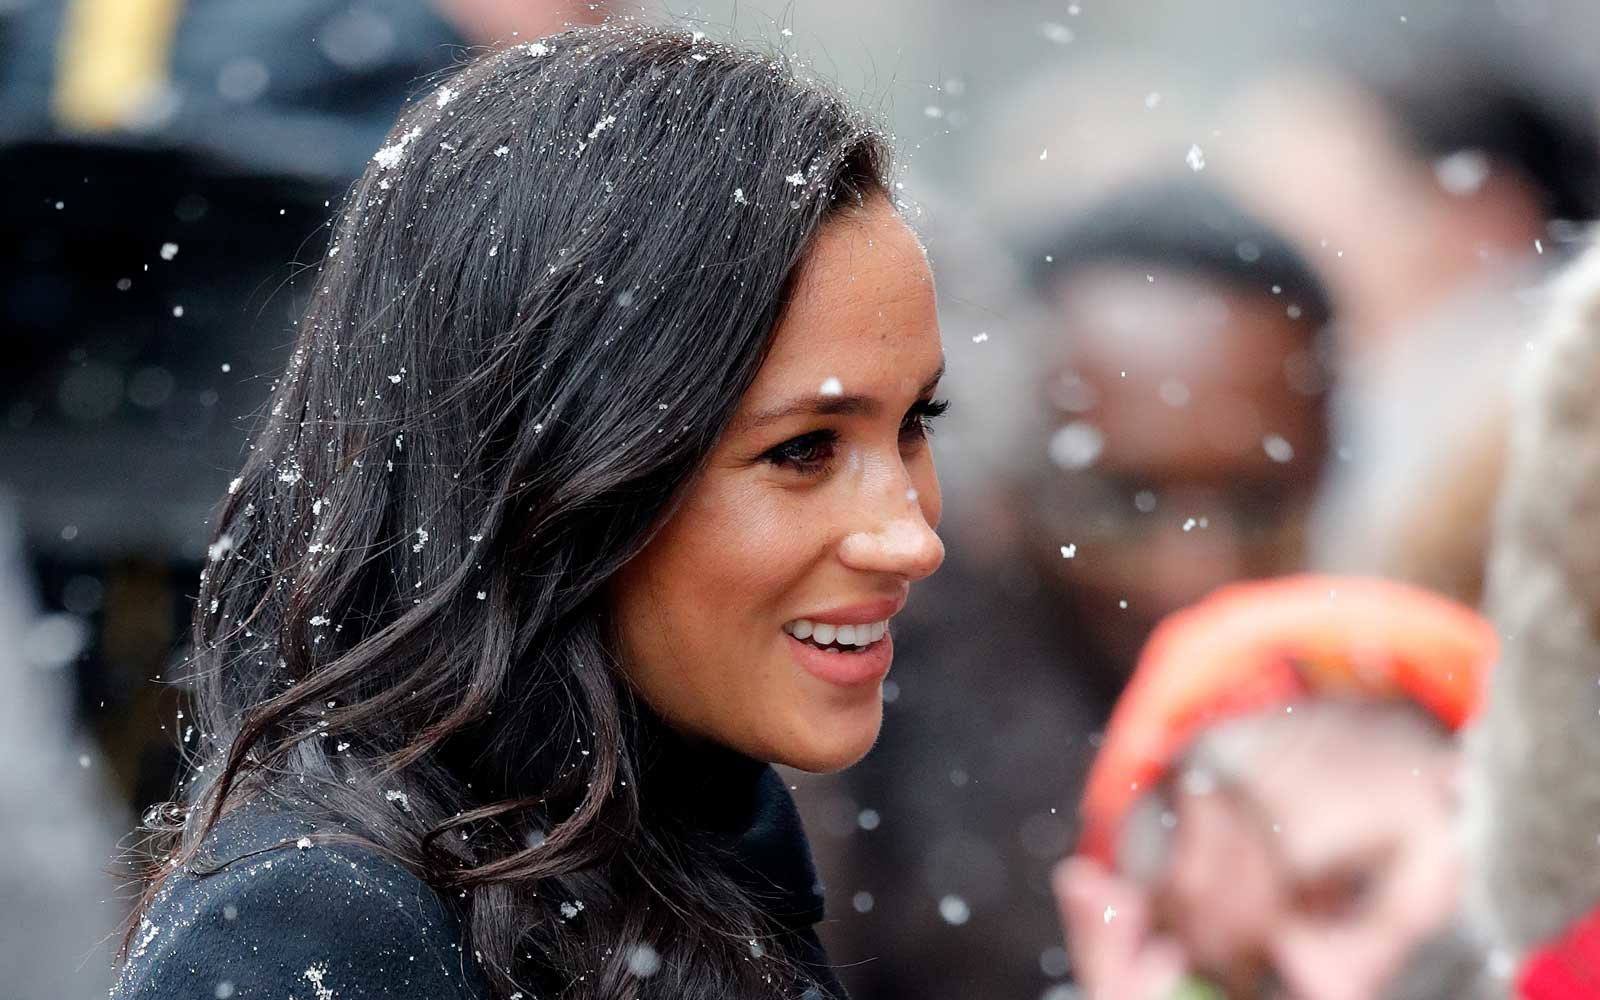 What Did Meghan Markle's Sister Say About Her New York Trip?